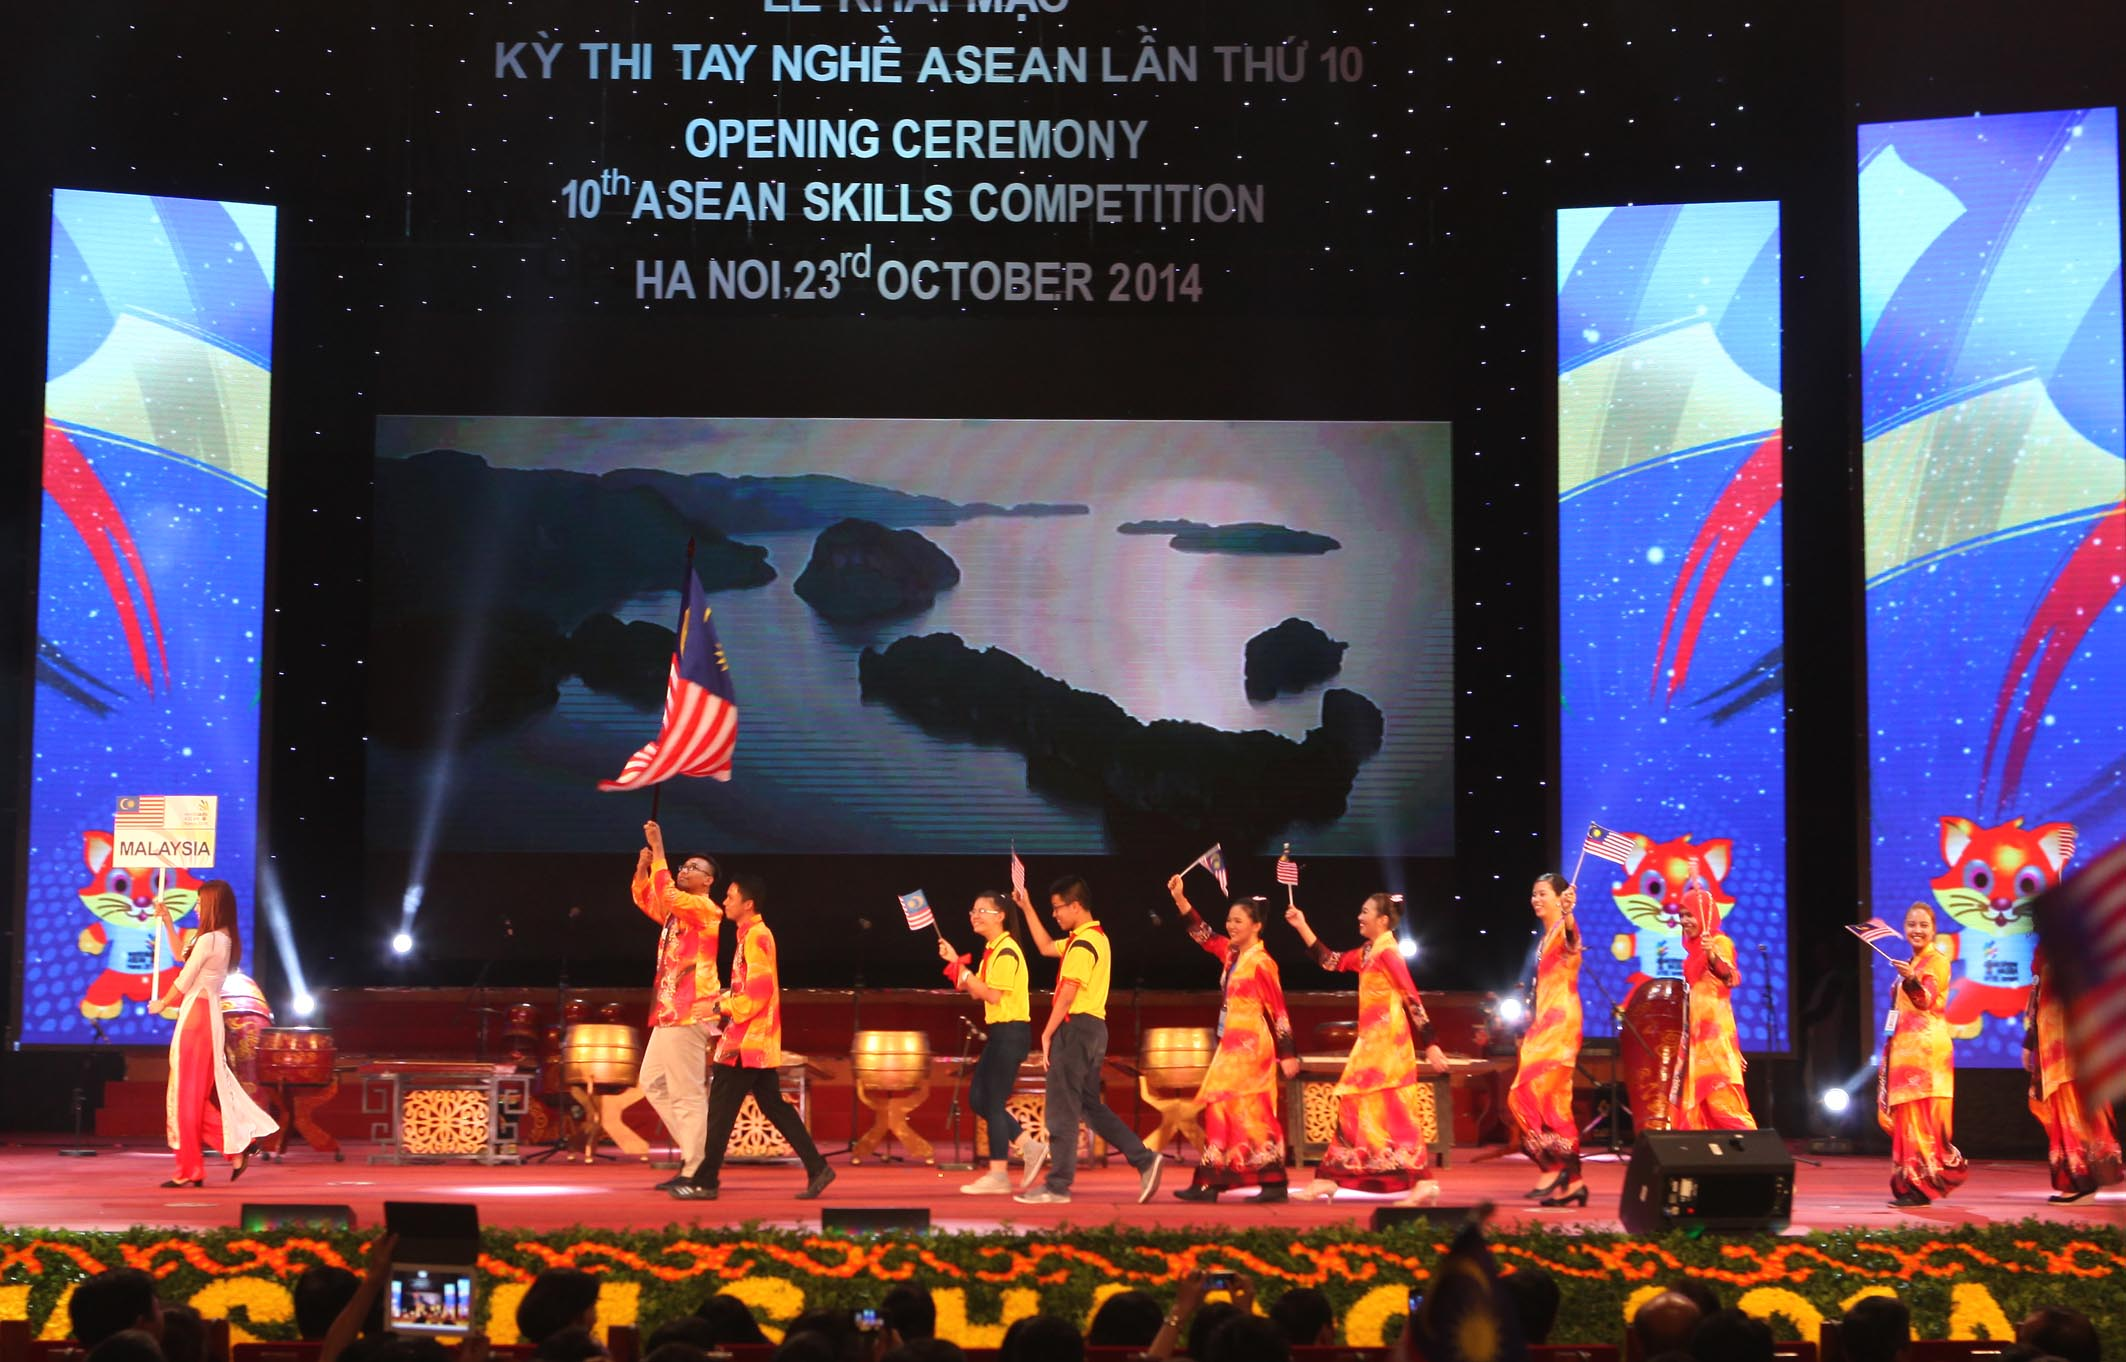 Malaysia's delegation parades into stage